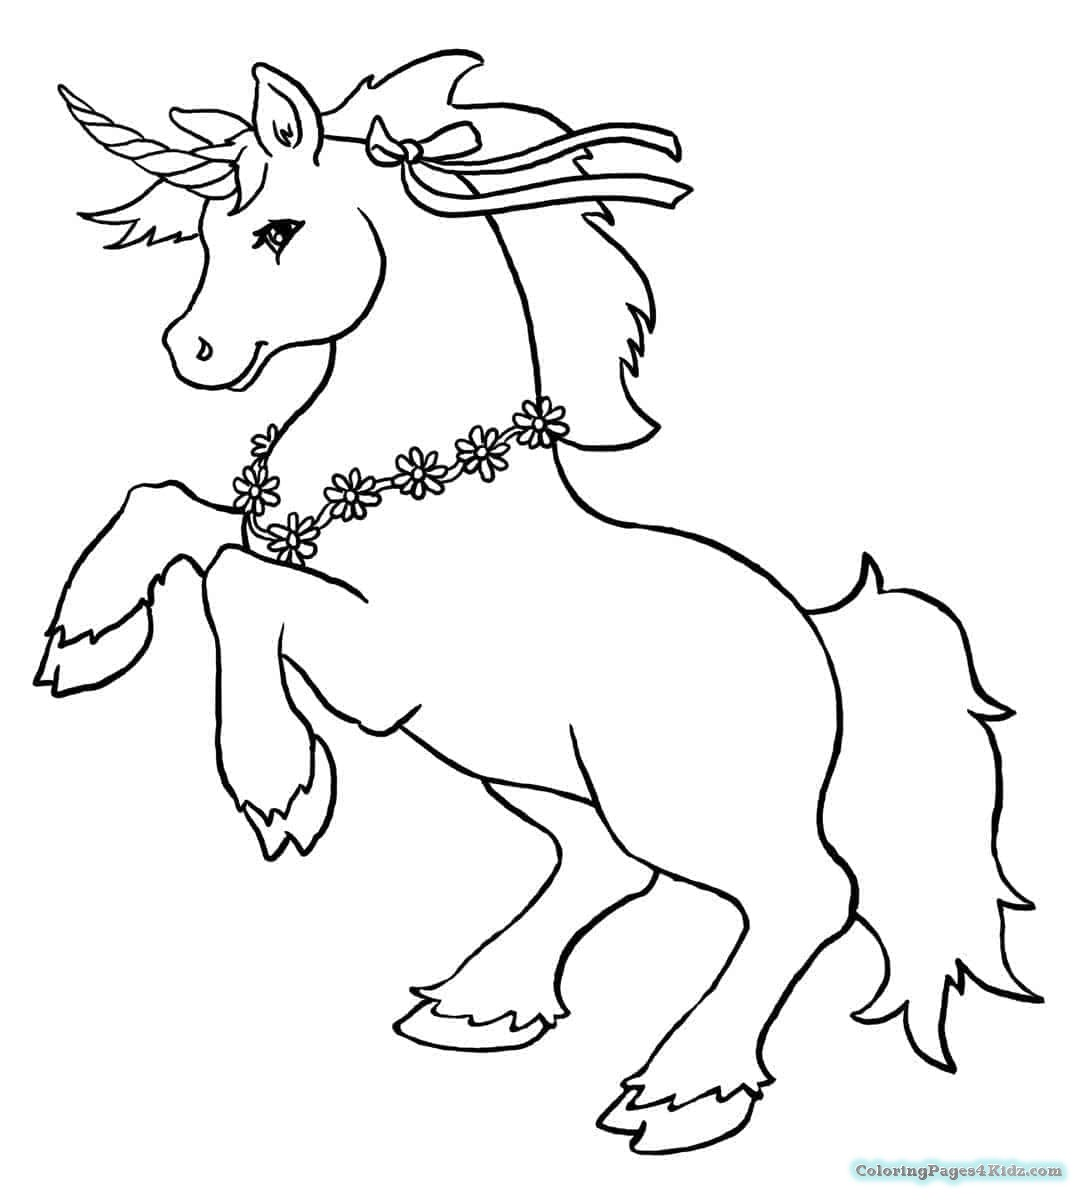 unicorn anime coloring pages coloring pages free coloring pages of unicorn anime anime pages unicorn anime coloring